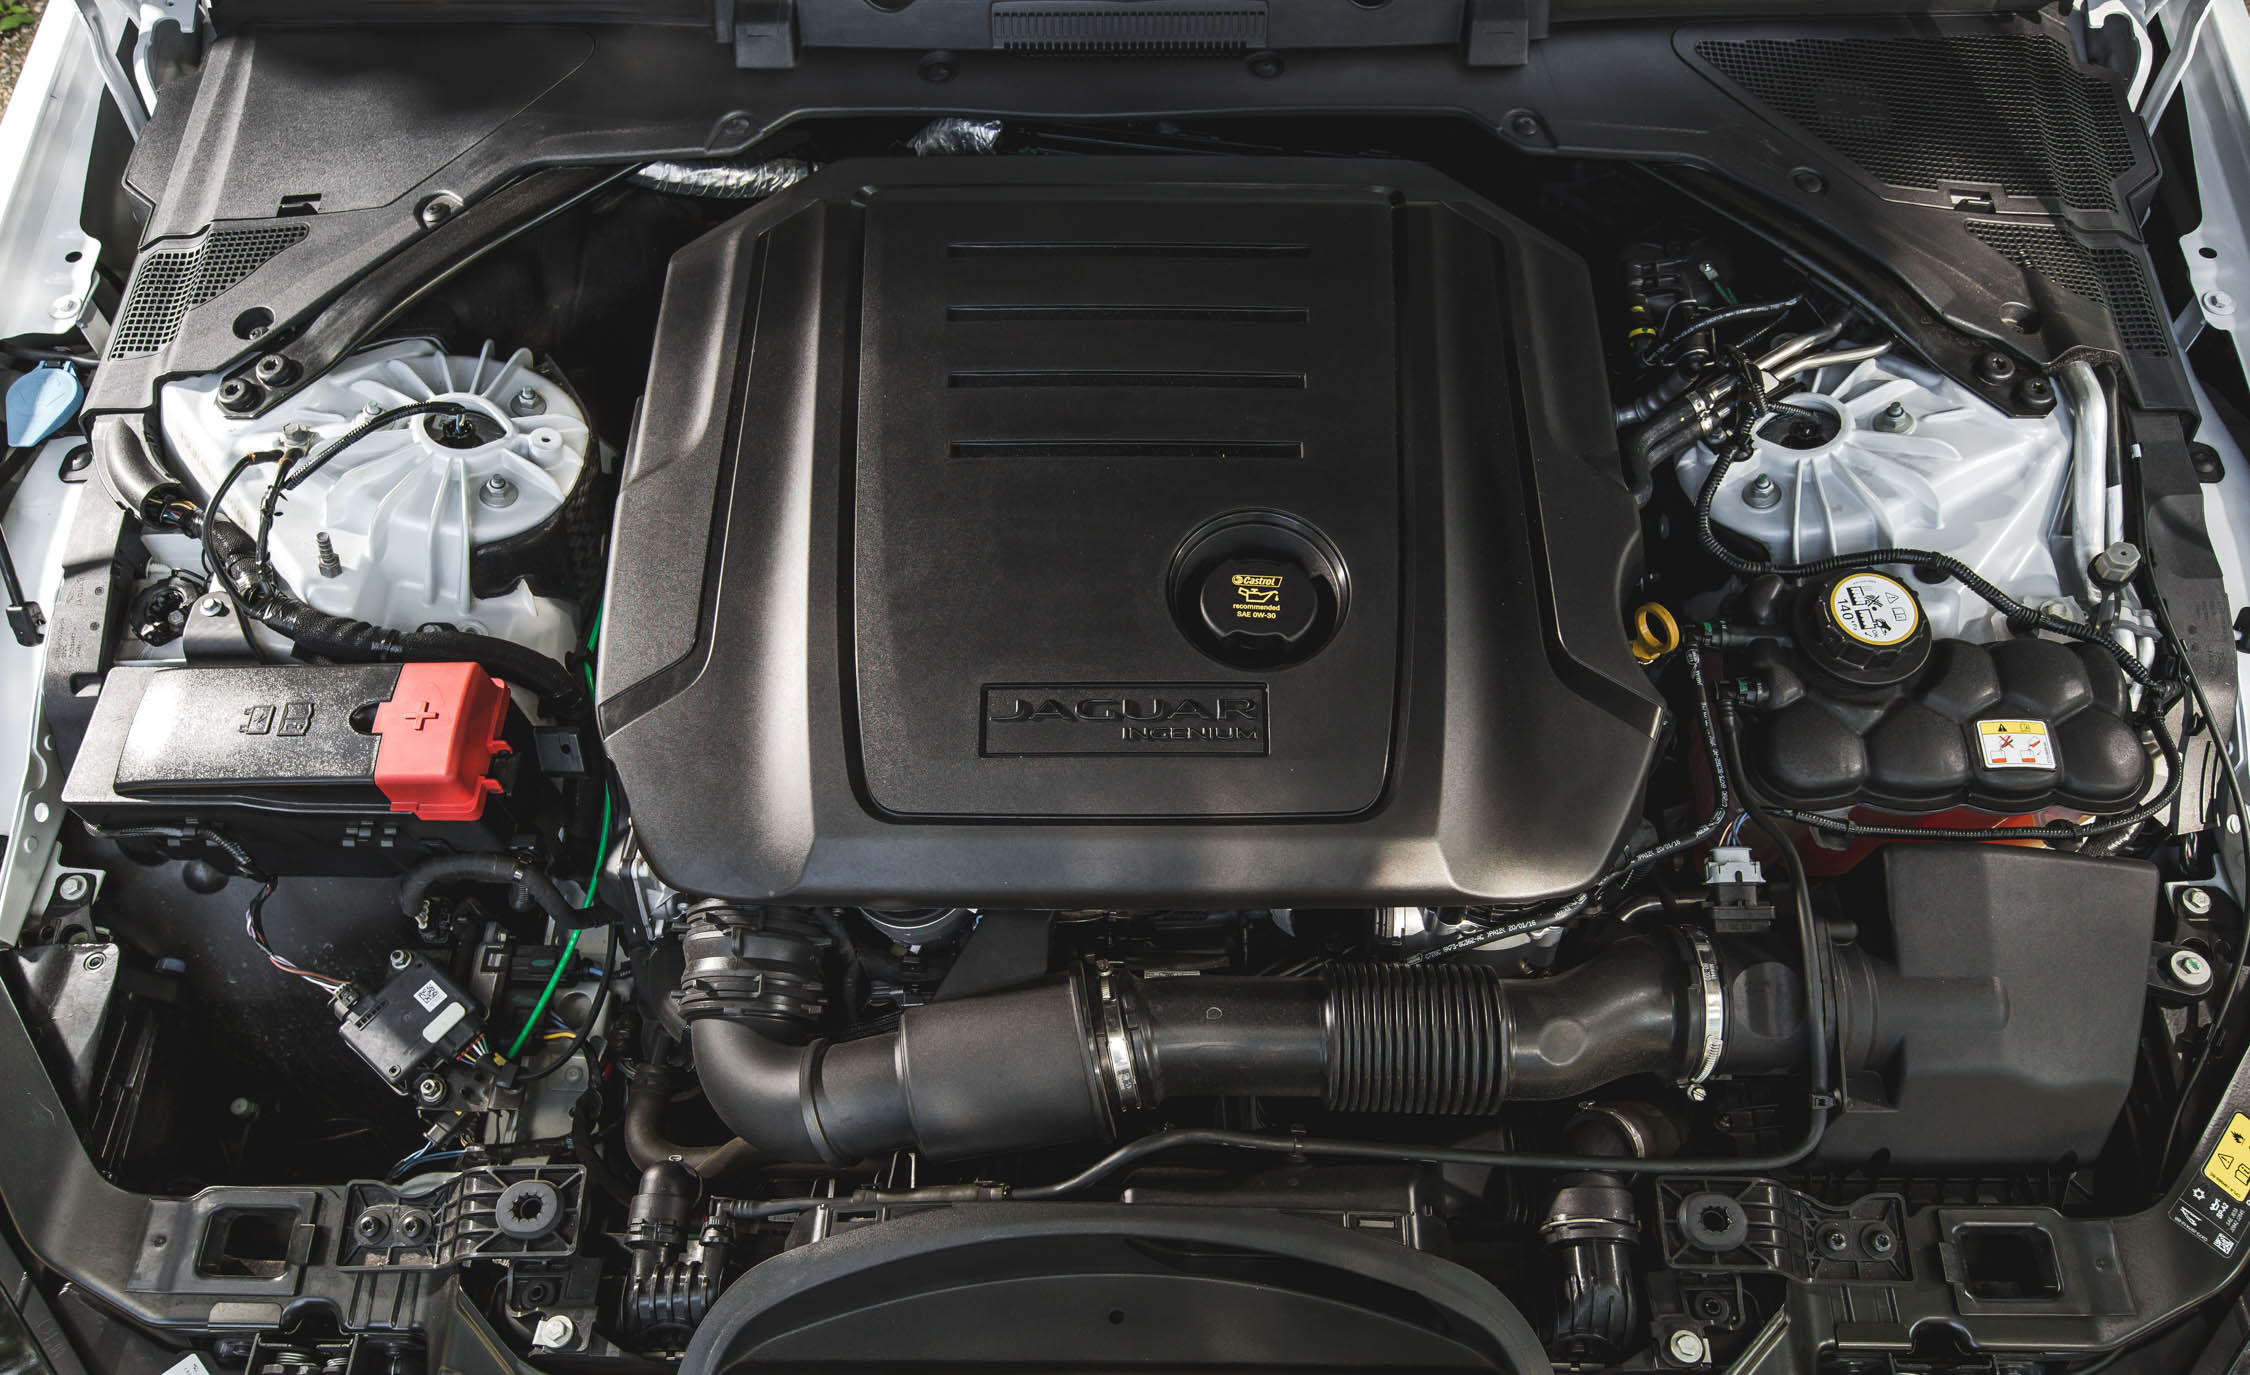 2017 Jaguar Xe View Engine (Photo 22 of 32)